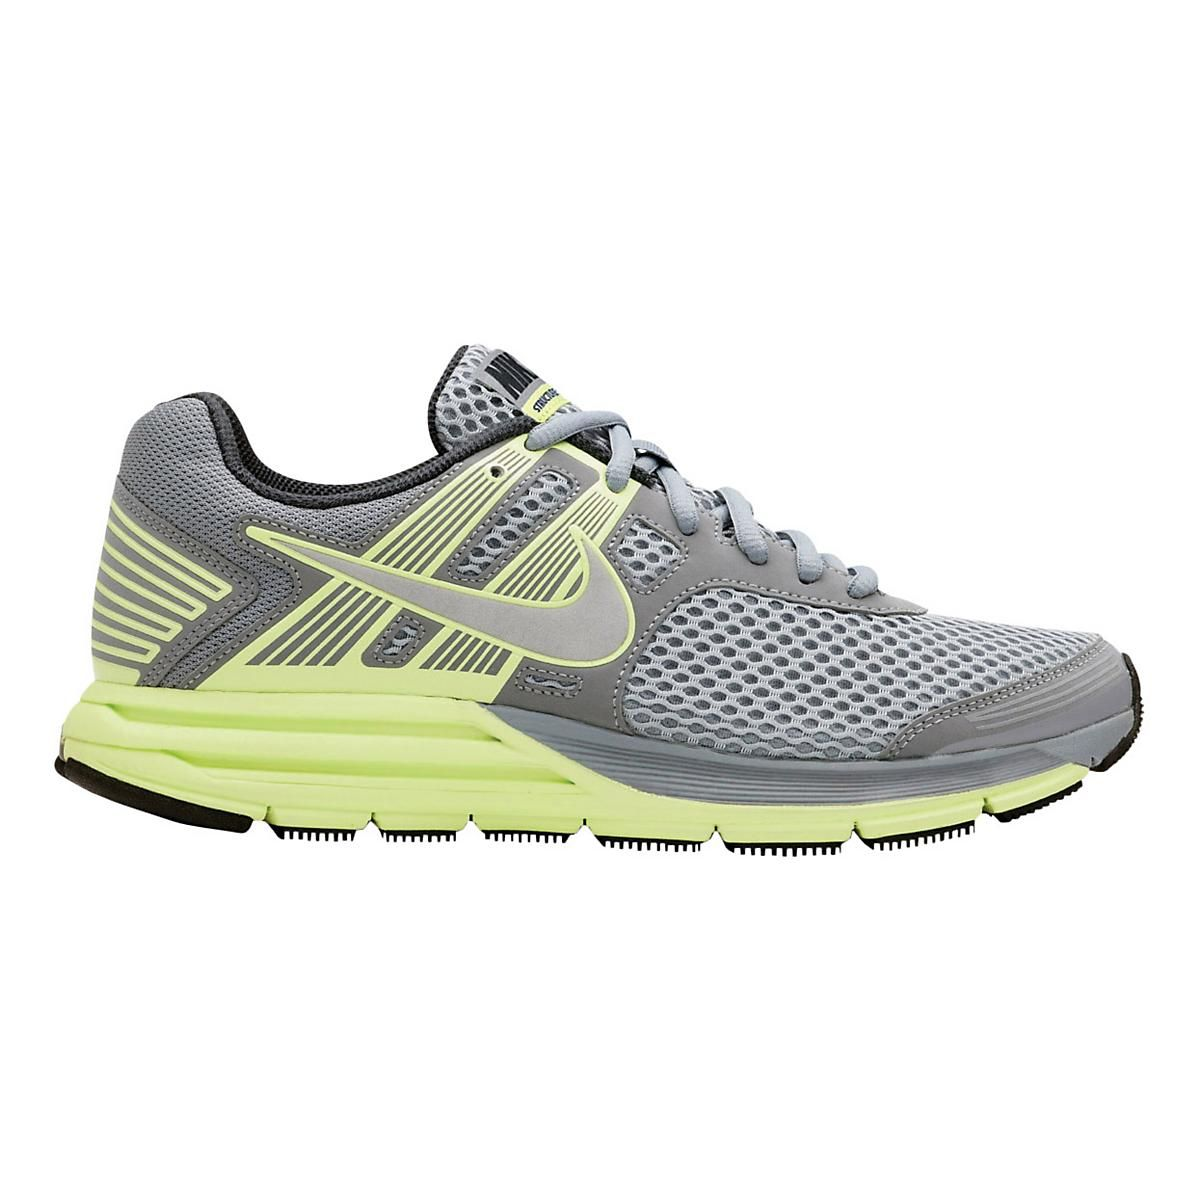 Womens Nike Zoom Structure+ 16 Running Shoe at Road Runner Sports